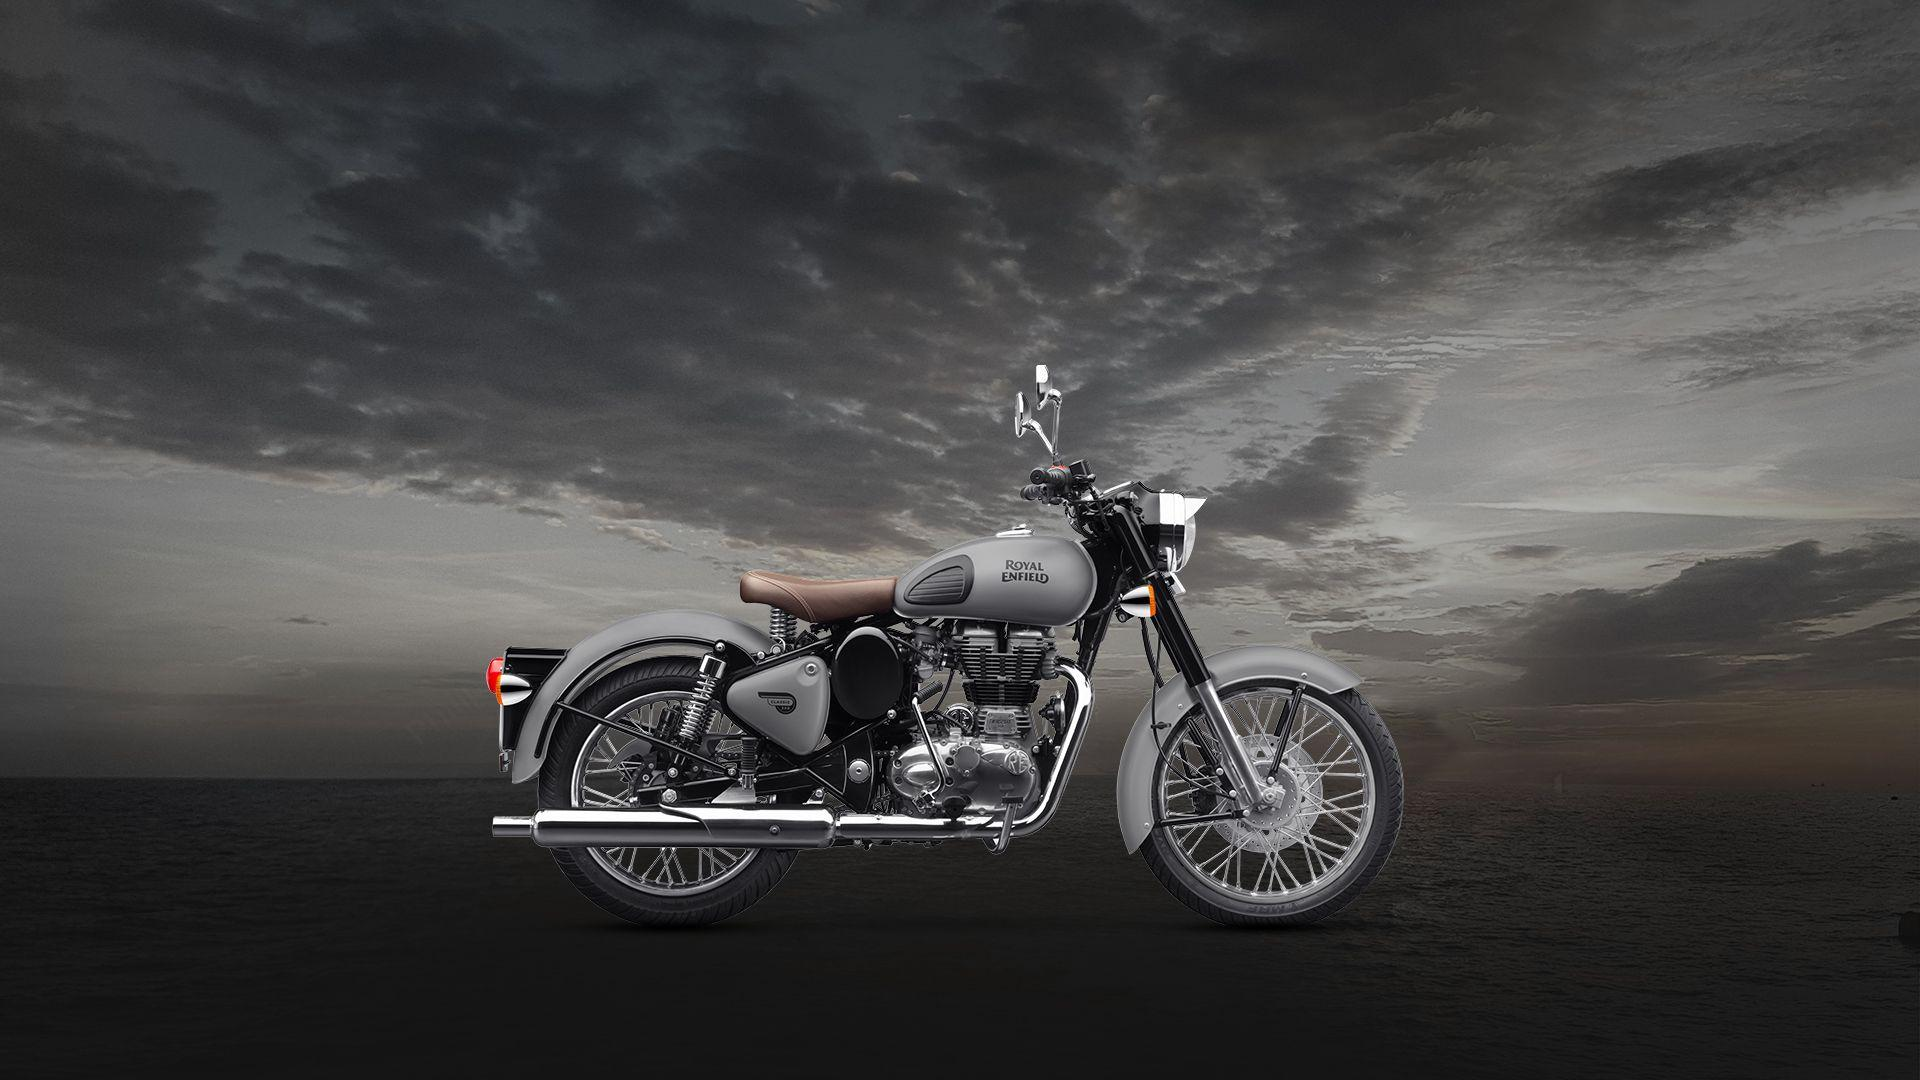 Royal enfield classic 350 wallpapers wallpaper cave - Royal enfield classic 350 wallpaper ...